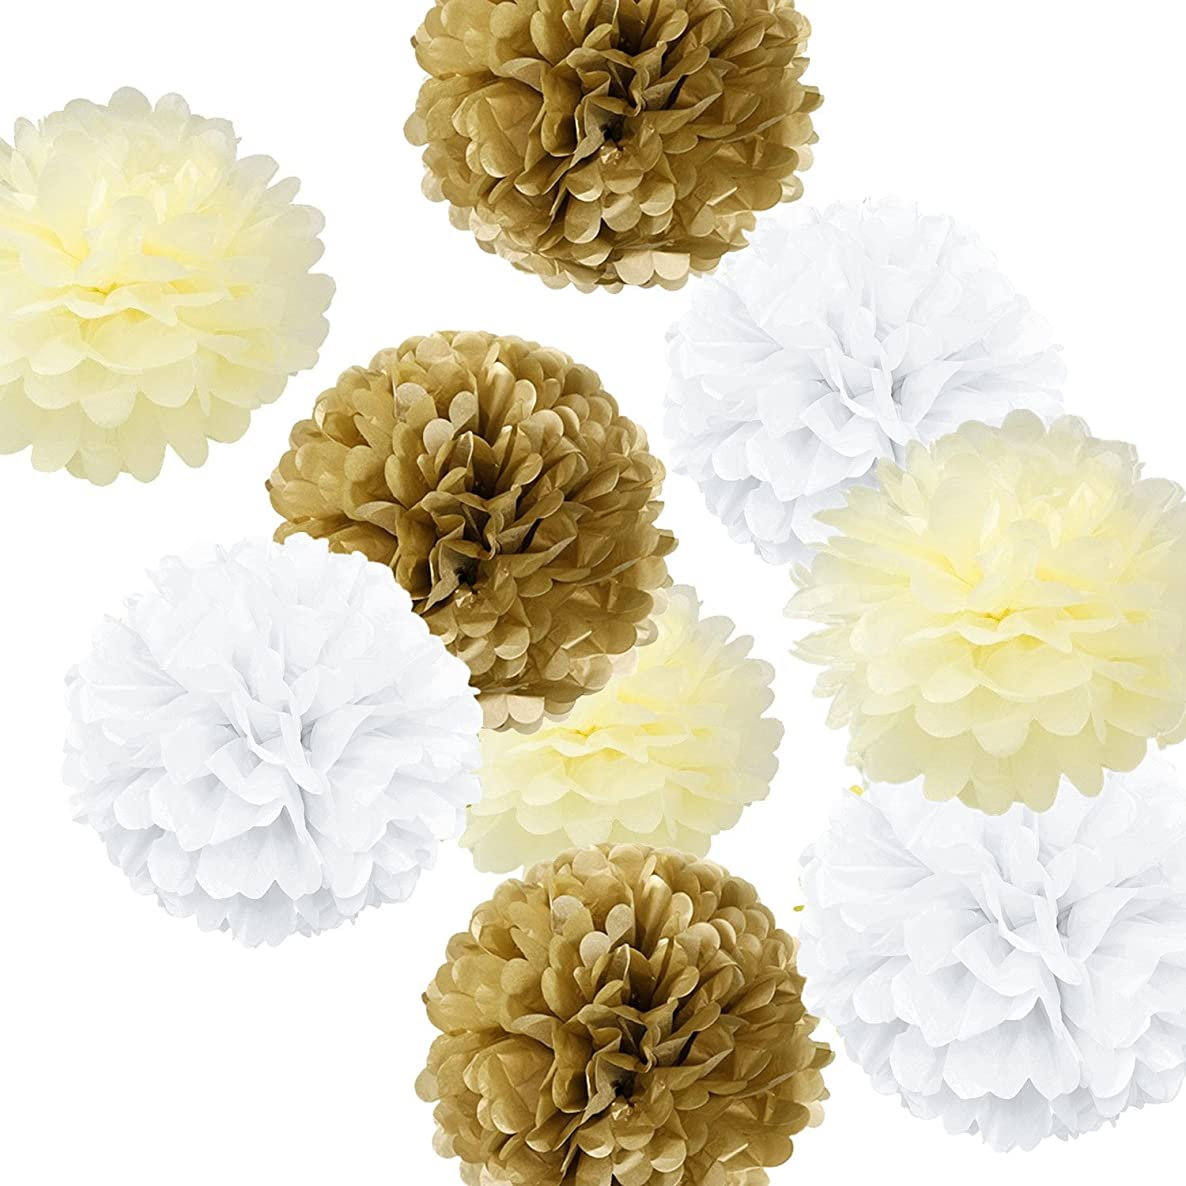 Fonder Mols 9pcs Tissue Pom Poms Paper Flowers Kit Party Hanging Flowers Ball for Wedding Birthday Bridal Baby Showers Nursery Décor (White Ivory Kahki, 8inch 10inch 14inch)